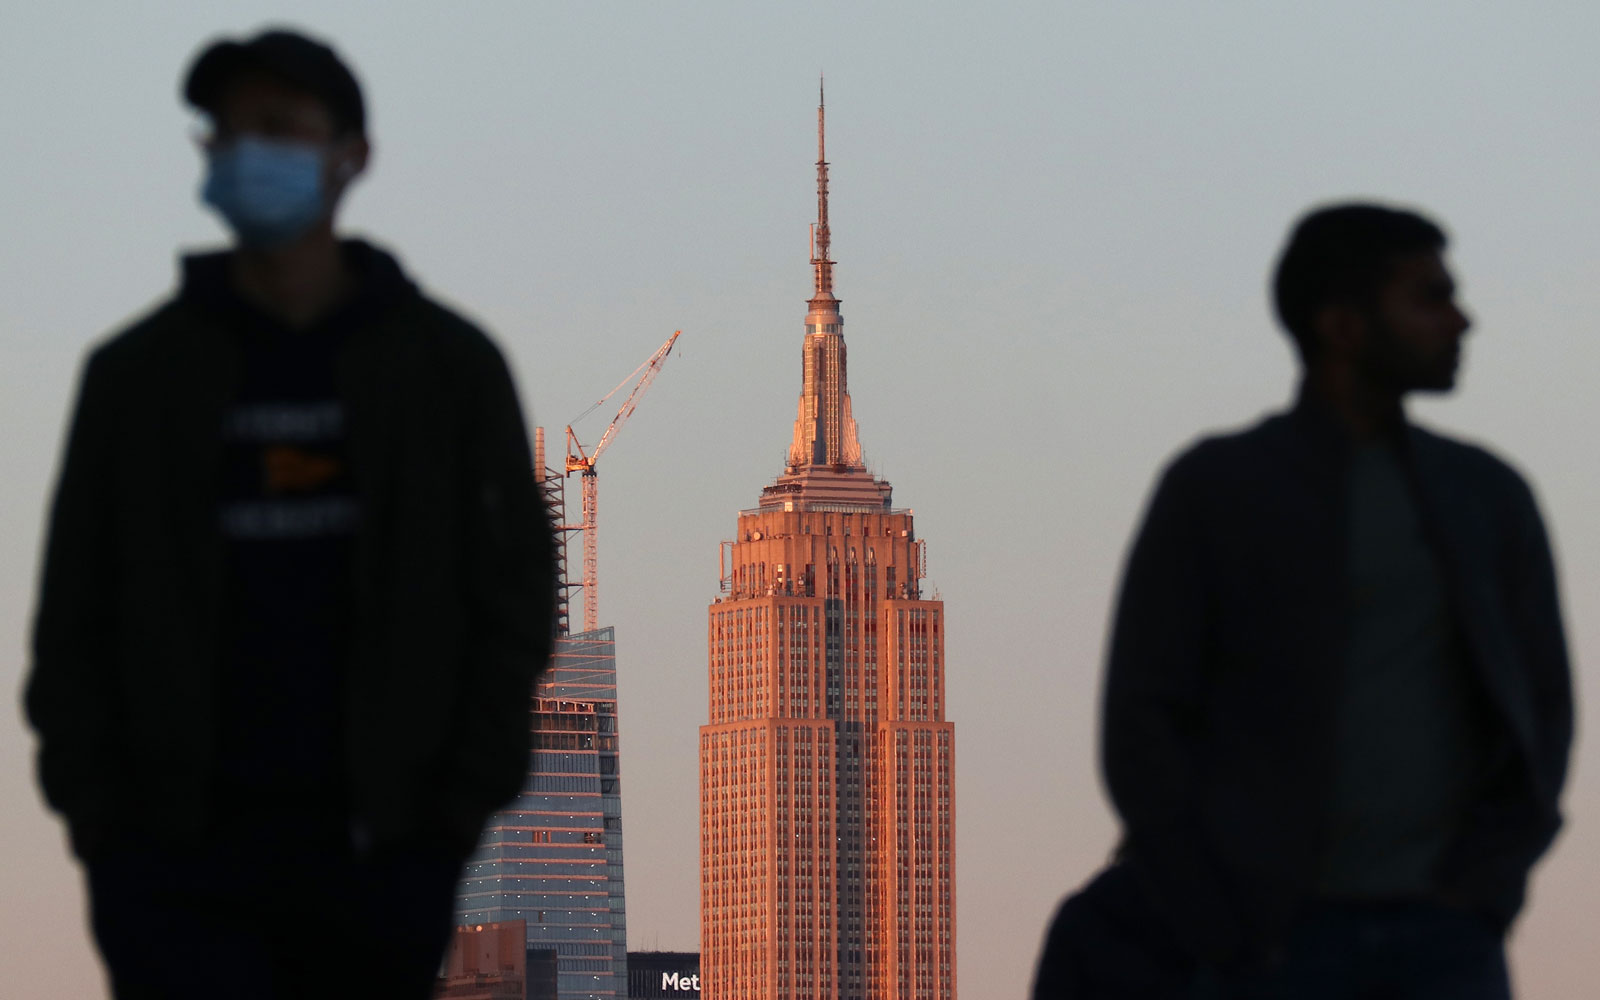 2 people stand in front of the empire state building